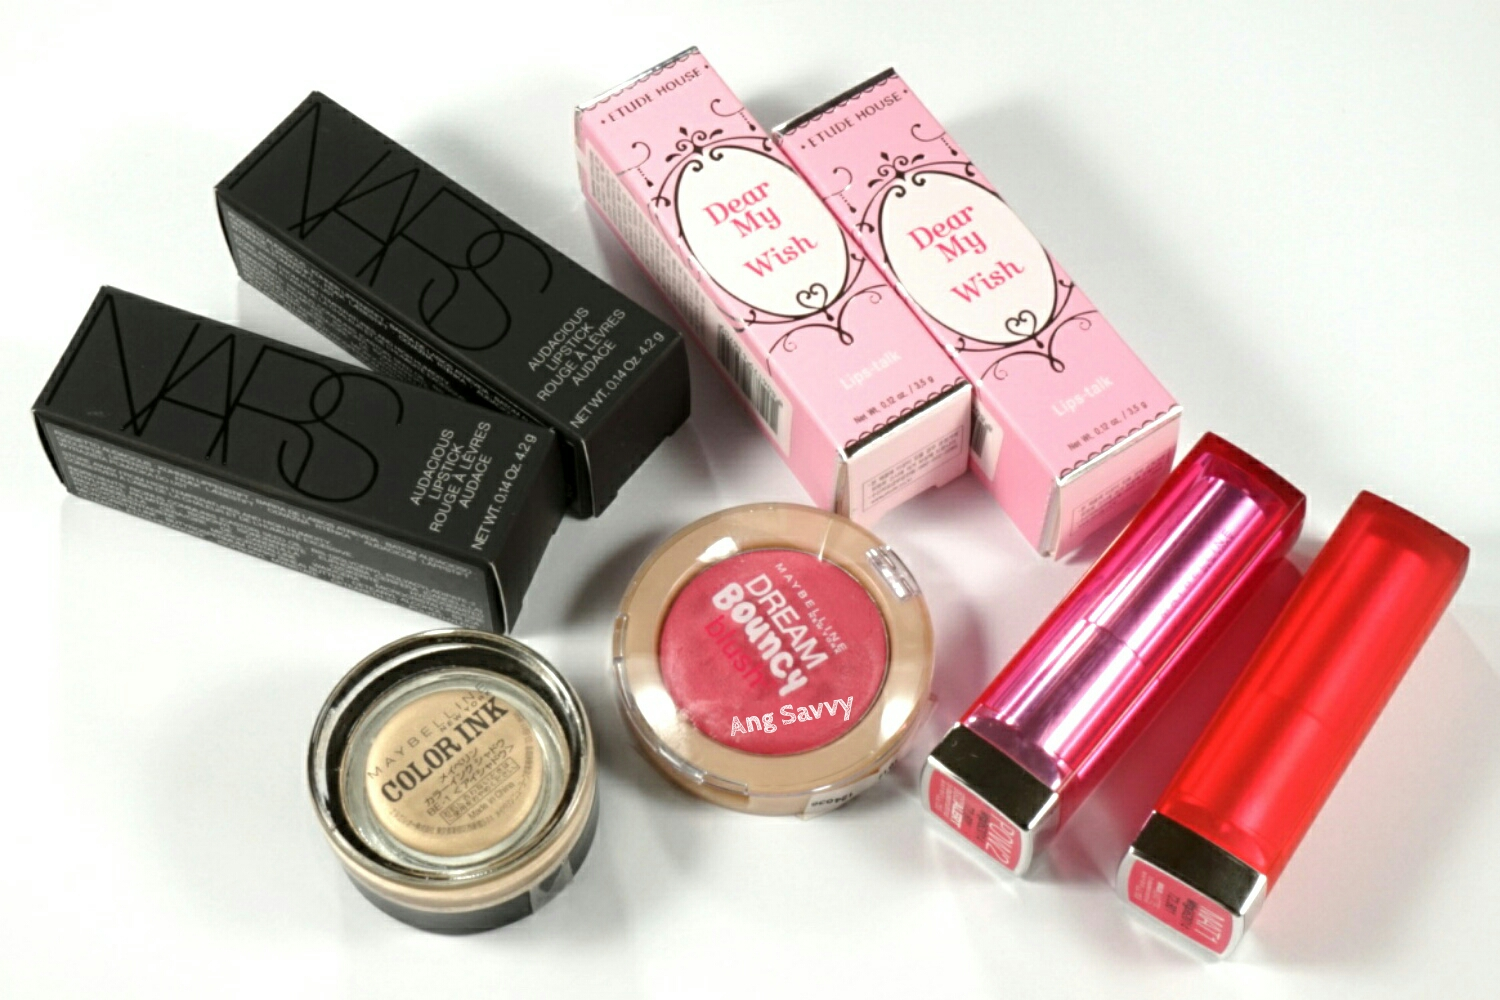 Makeup Mini Haul: NARS, Maybelline and Etude House